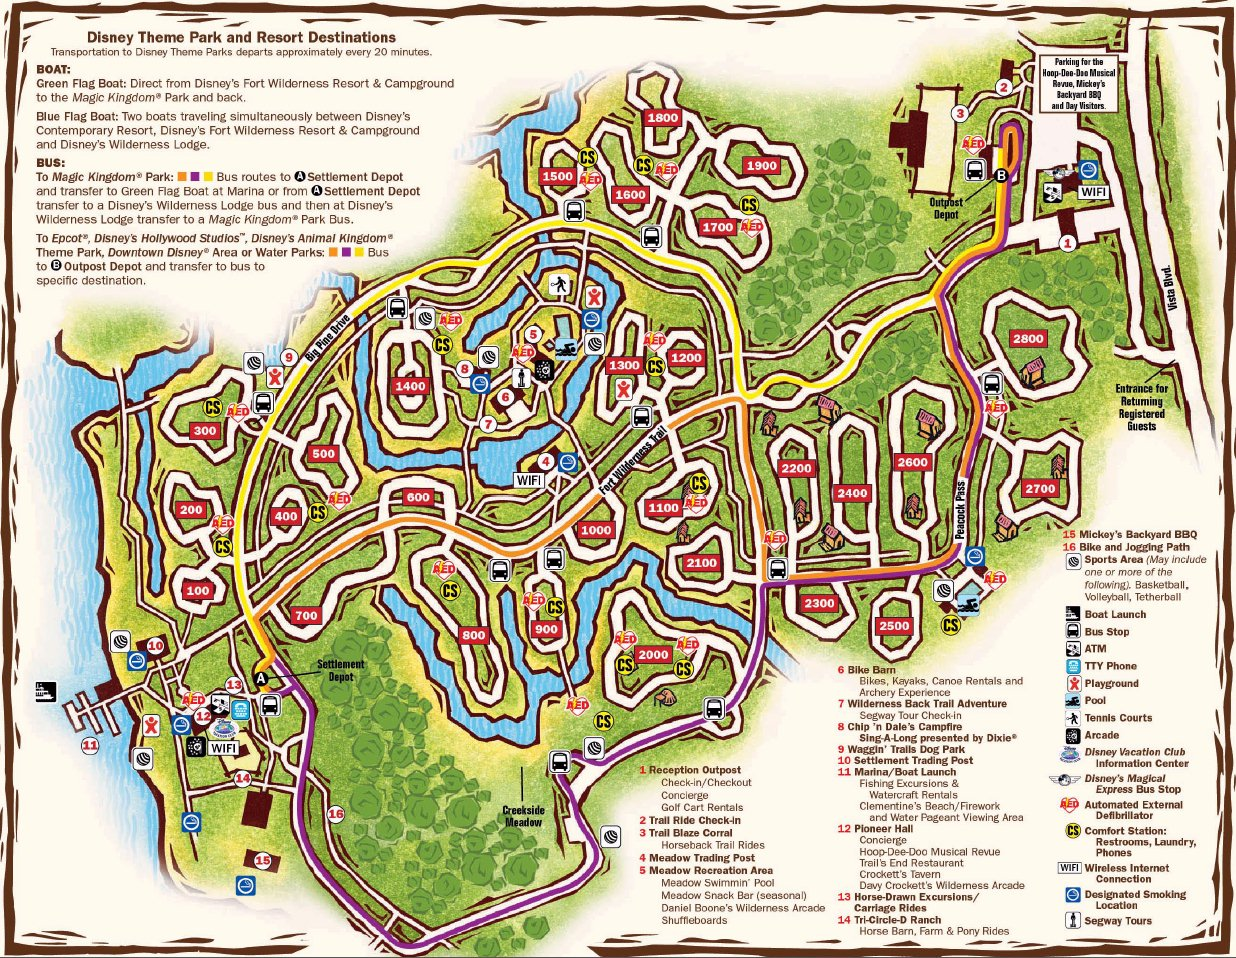 Map Layout Disney's The Cabins at Fort Wilderness Resort